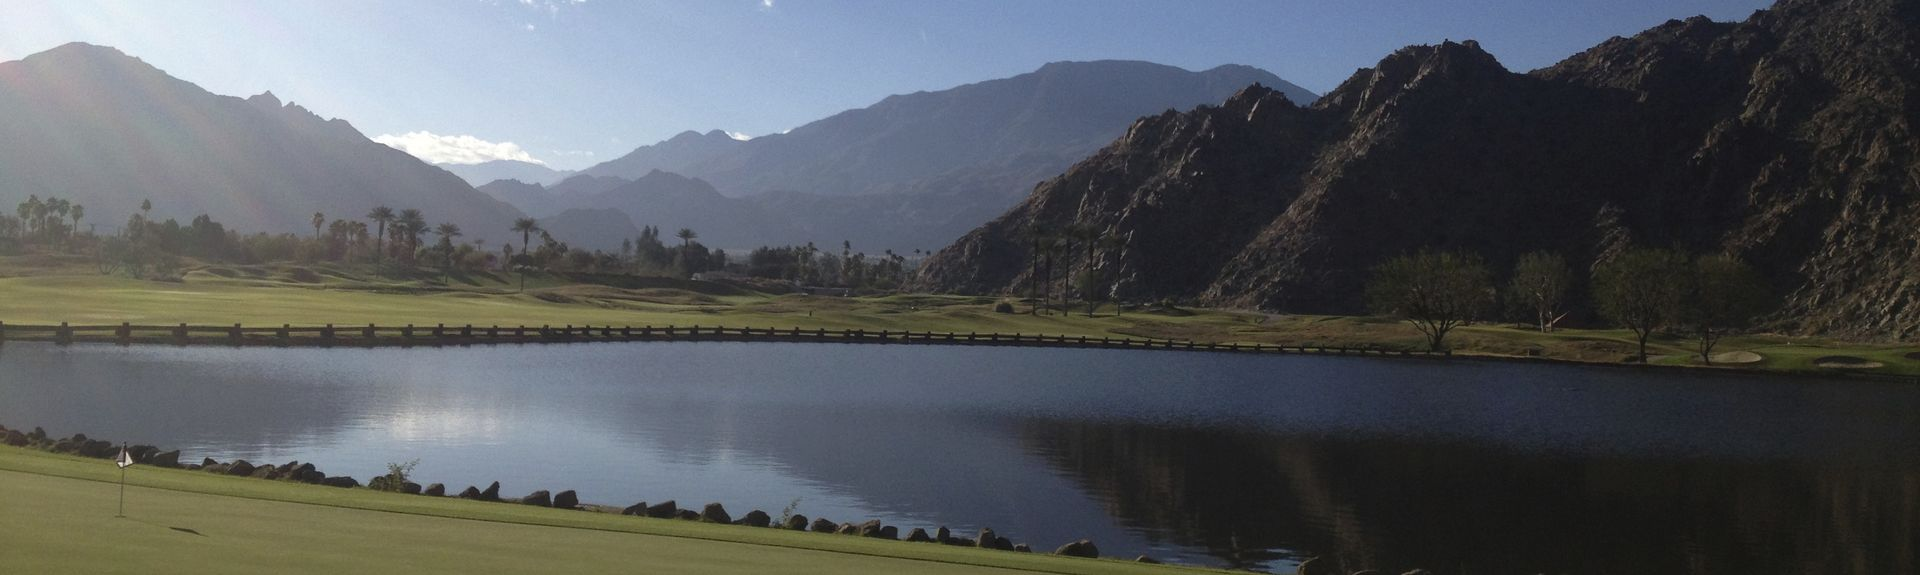 La Quinta Resort & Club (La Quinta, California, Estados Unidos)